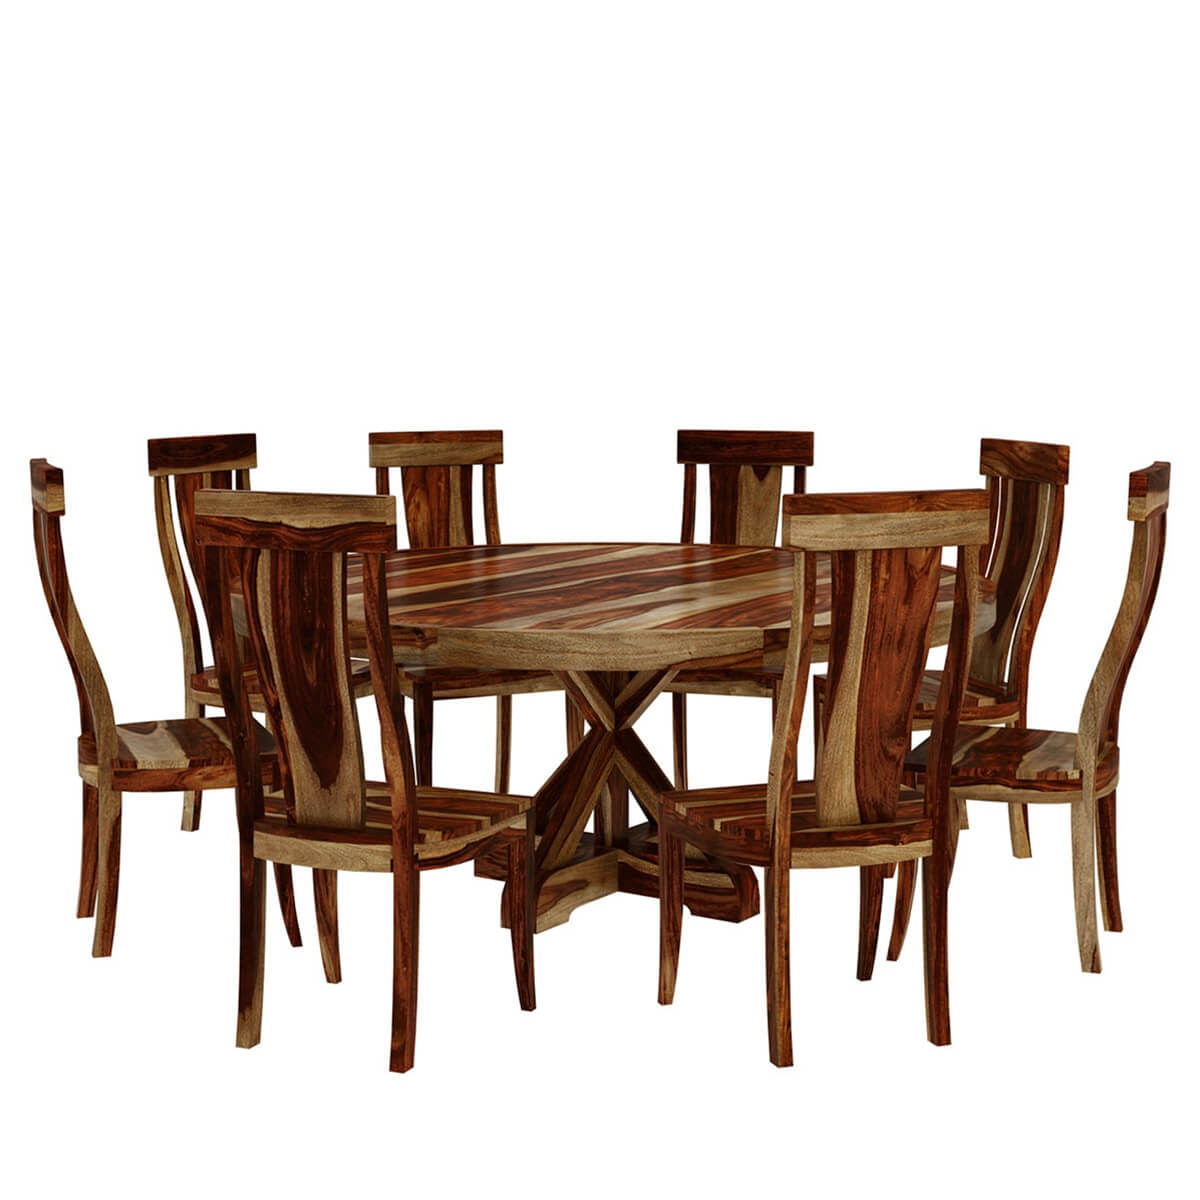 Bedford Rustic Solid Wood X Pedestal 10 Piece Round Dining Room Set Throughout 2017 Bedfo 3 Piece Dining Sets (View 9 of 20)